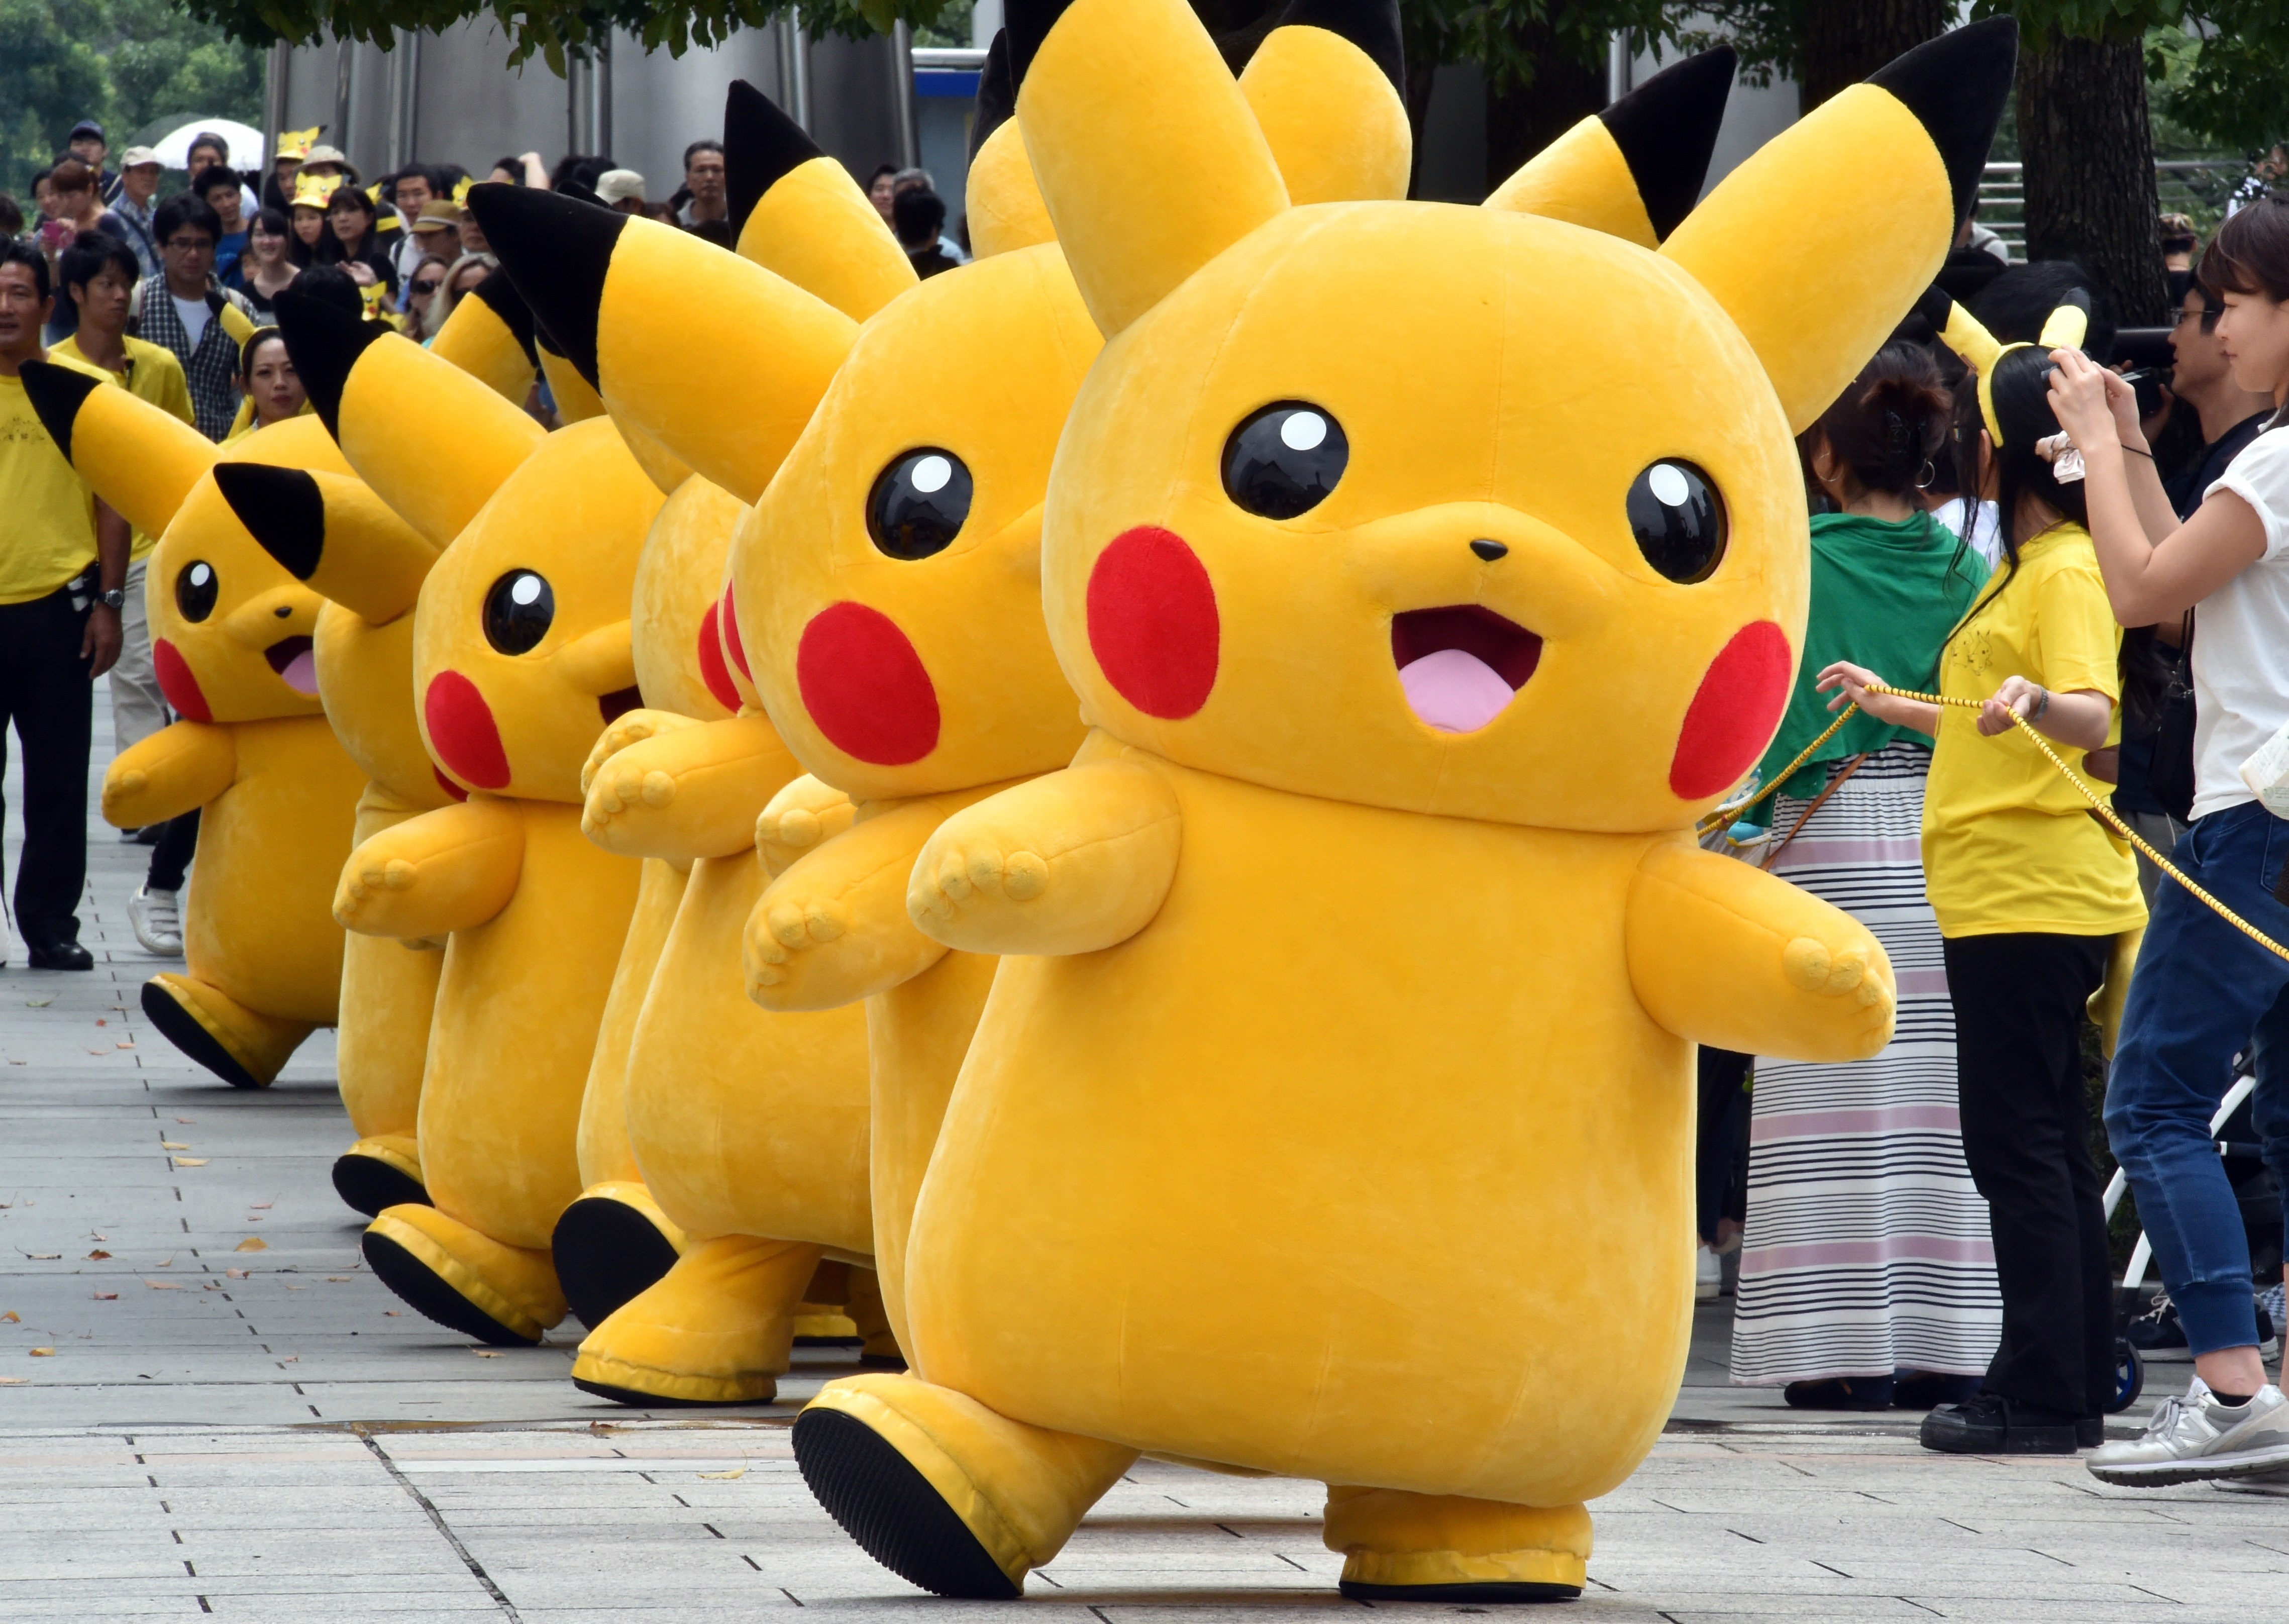 Dozens of Pikachu characters, the famous character of Nintendo's videogame software Pokemon, march at the Landmark Plaza shopping mall in Yokohama, suburban Tokyo on August 13, 2015.